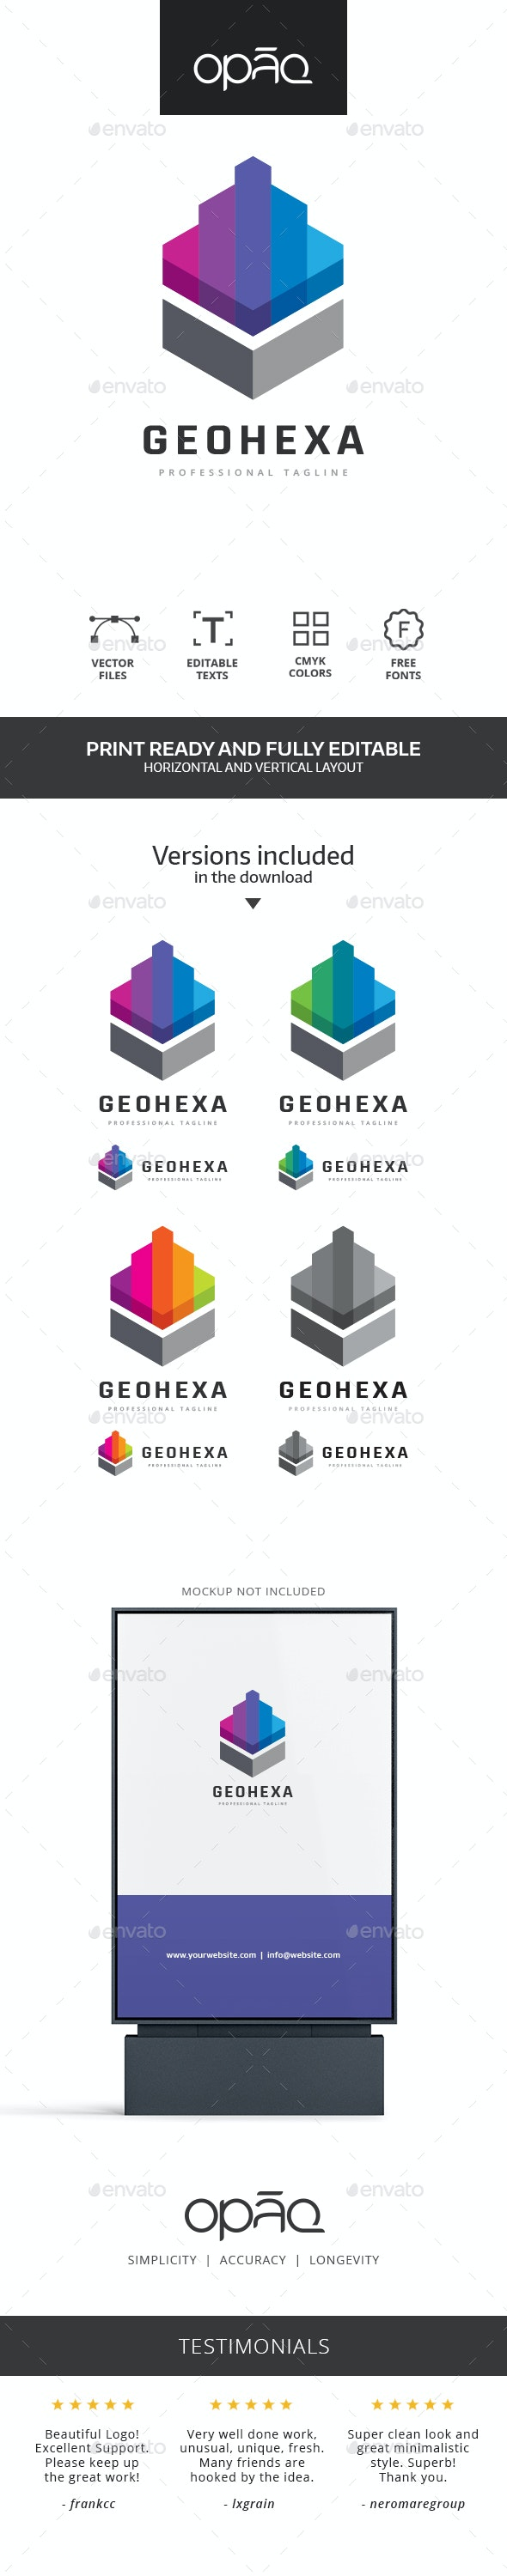 Geometric Hexagonal Shape Logo - Abstract Logo Templates